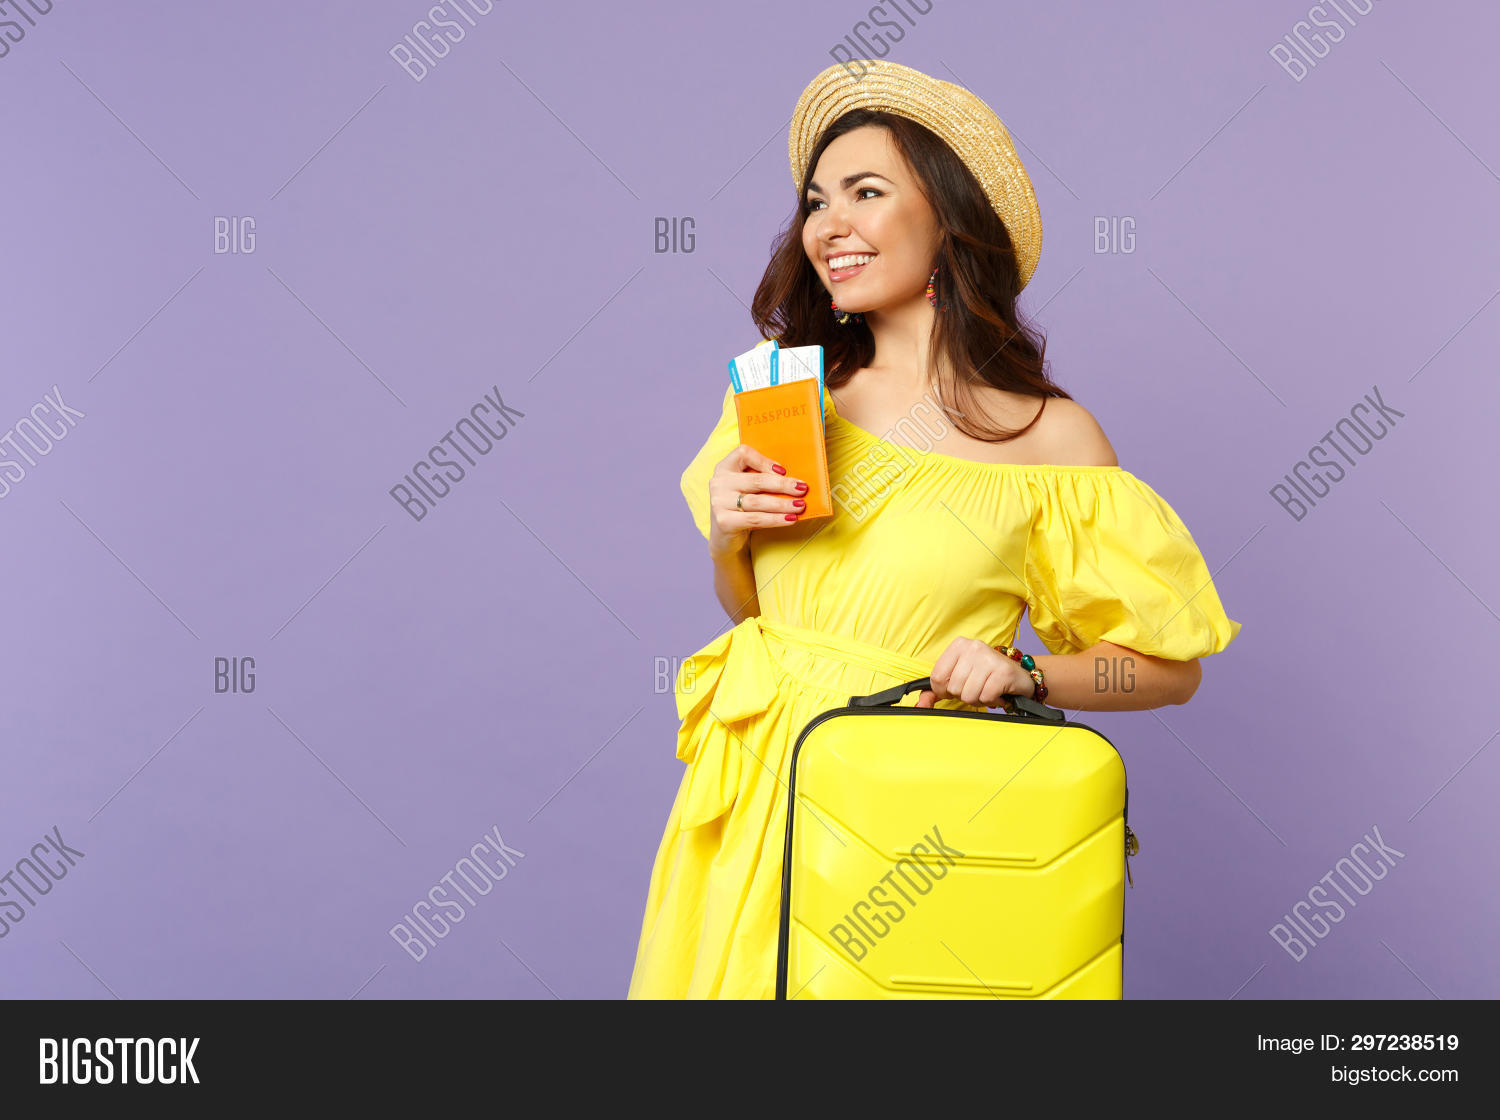 Smiling Young Woman In Yellow Dress, Summer Hat Hold Suitcase, Passport Boarding Pass Ticket Isolate